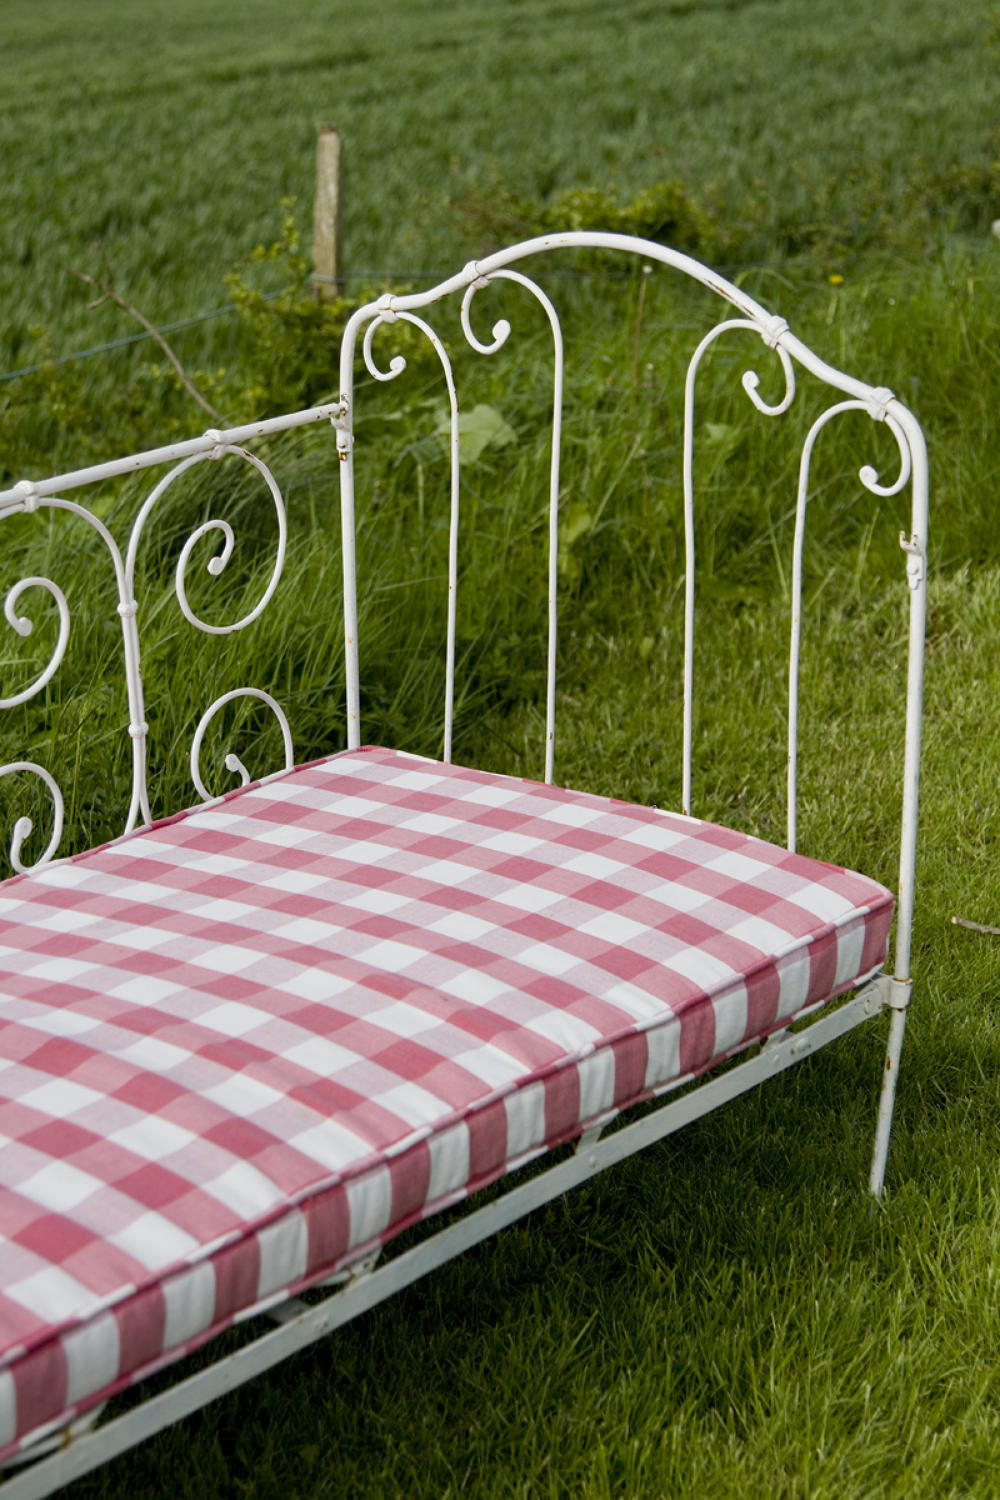 French Antique Child's Day Bed or Cot